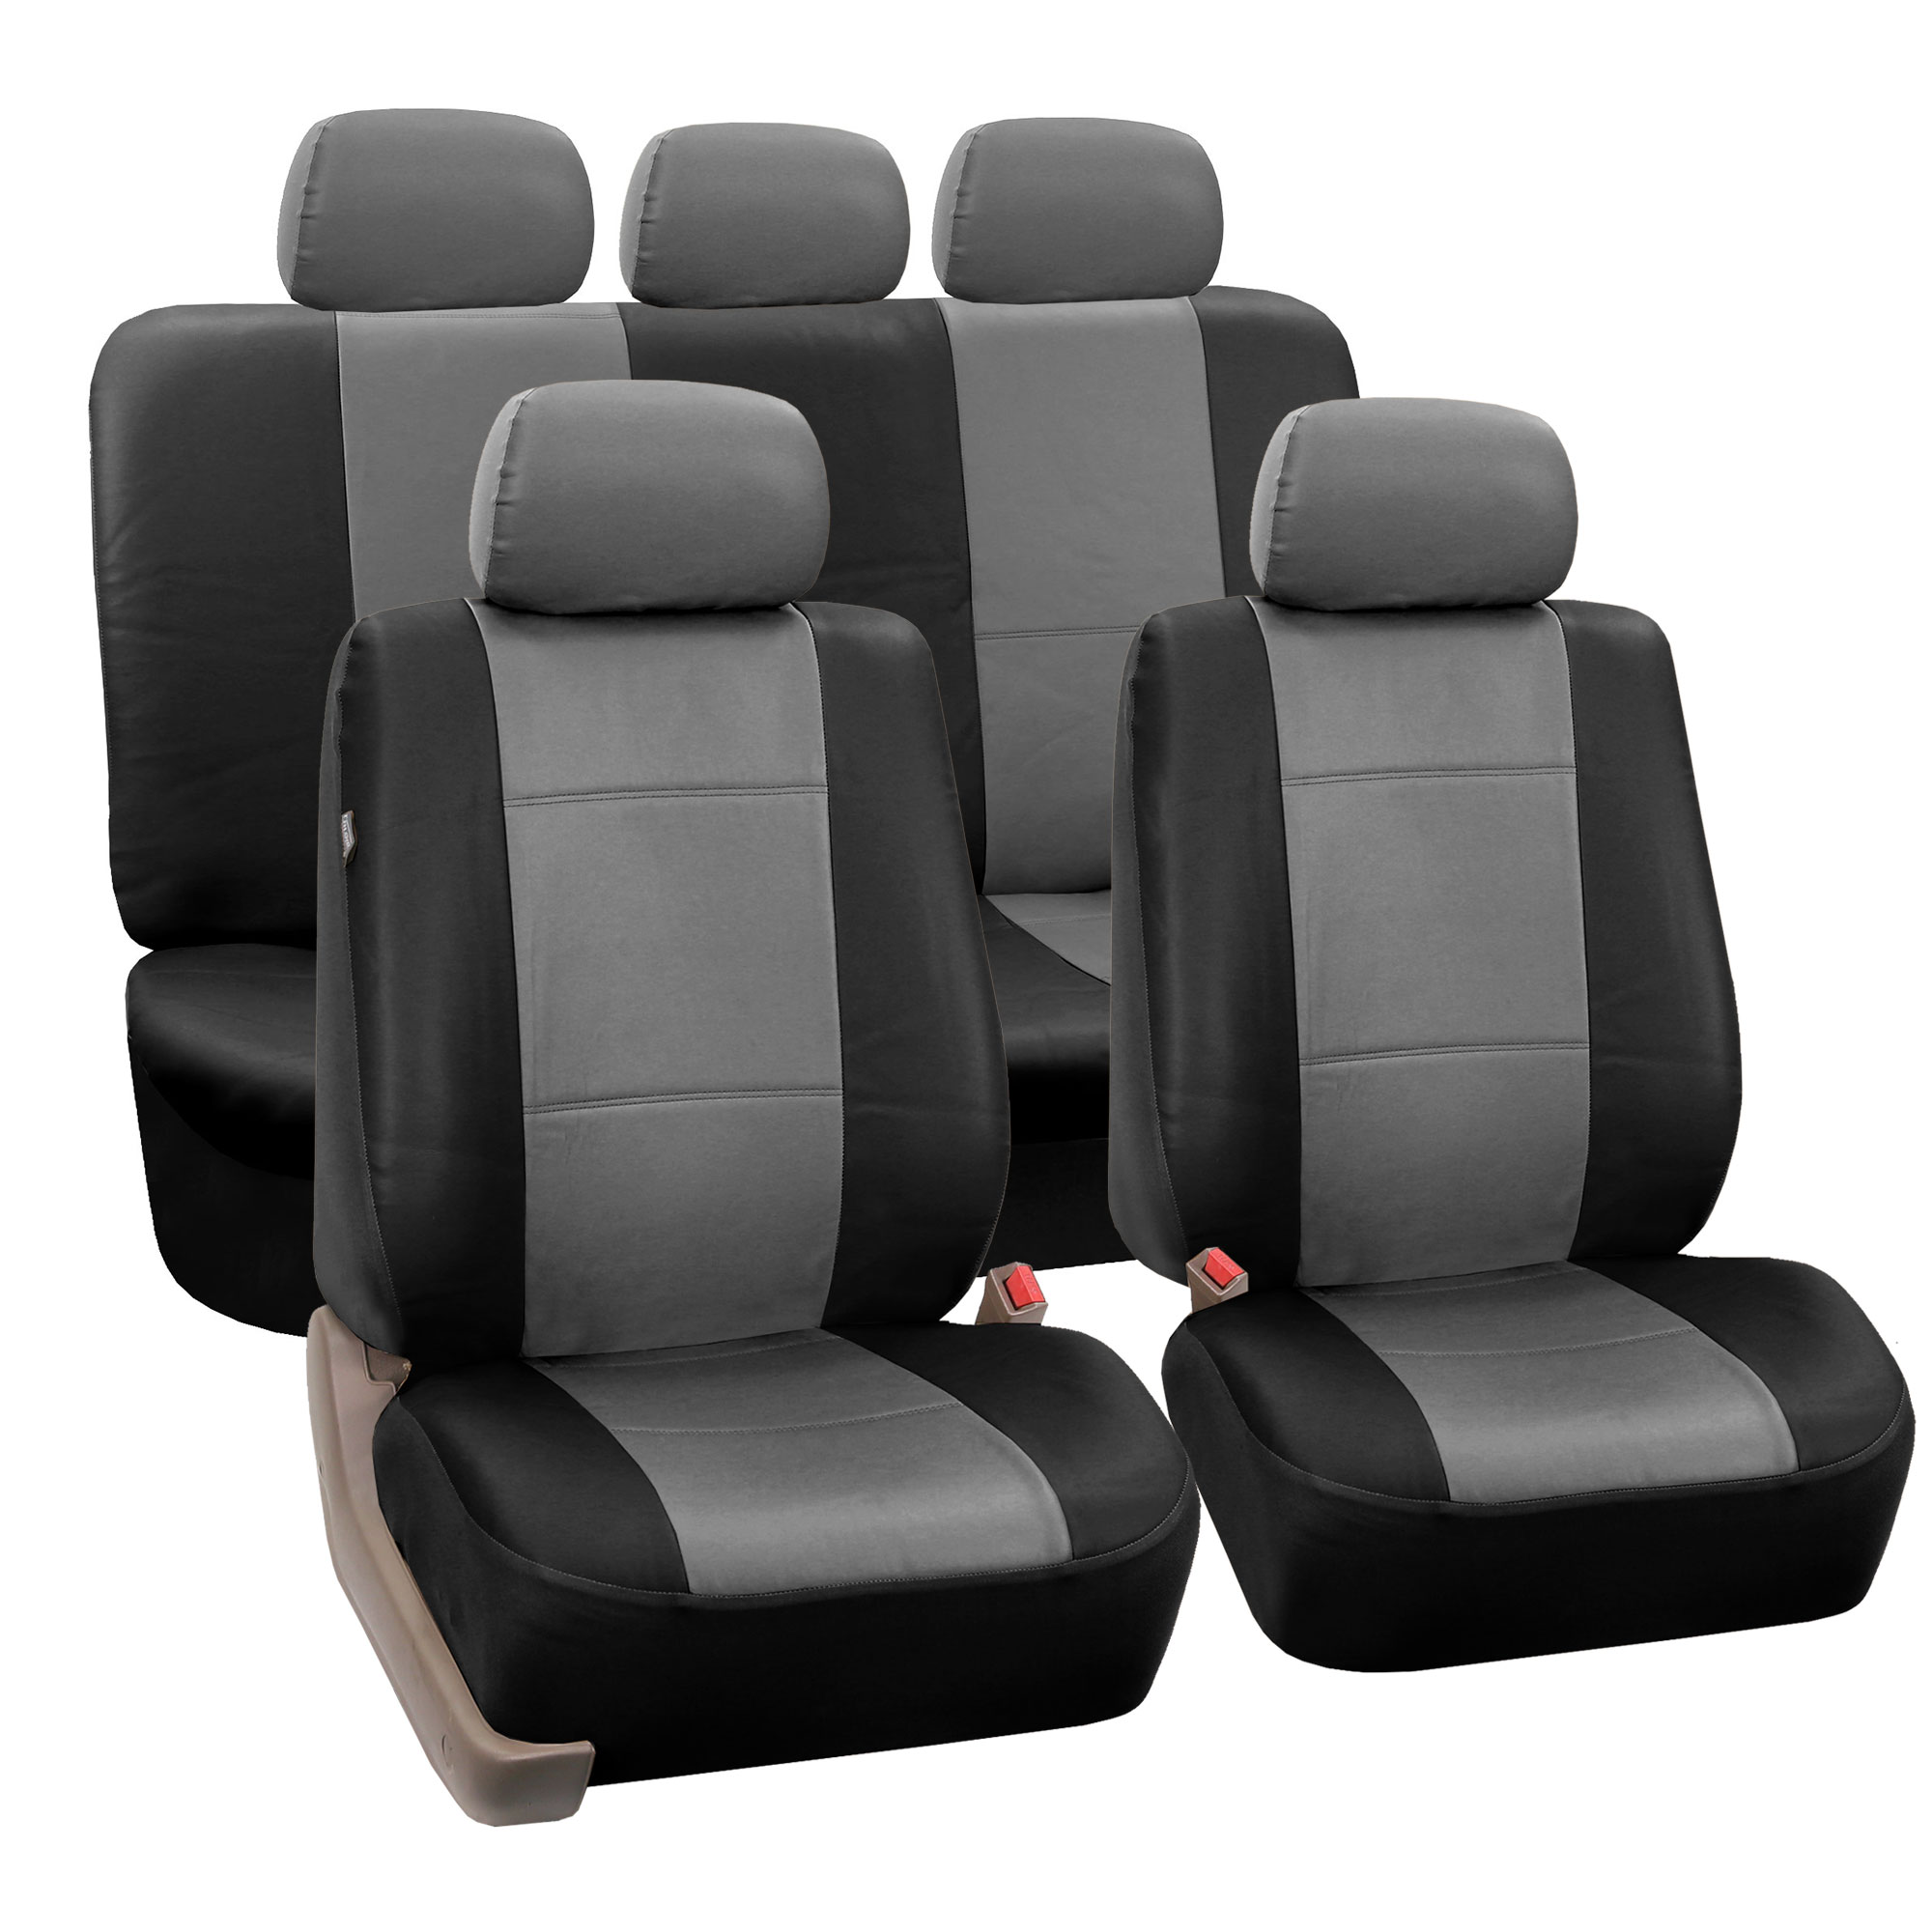 Prime Auto Seat Covers Floor Mats And Accessories Fh Group Short Links Chair Design For Home Short Linksinfo